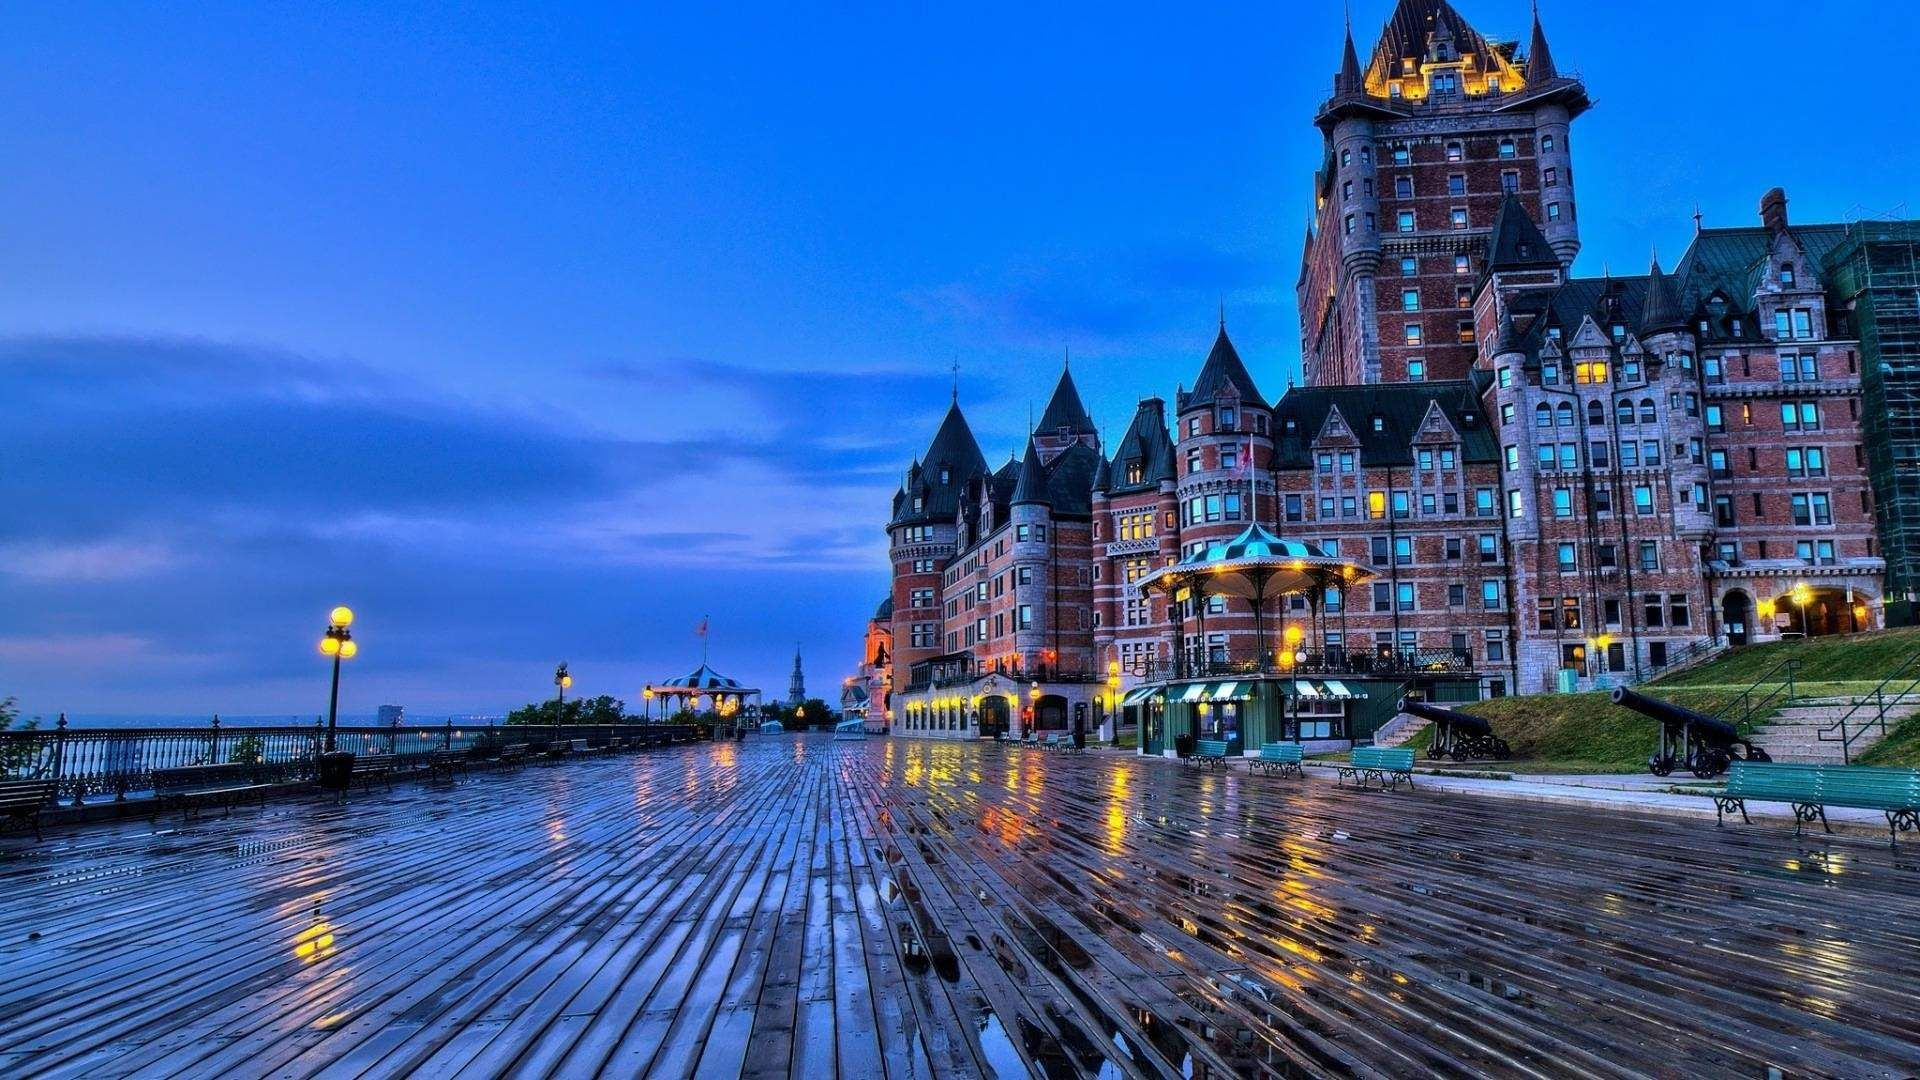 Quebec City Canada Wallpaper Hd For Desktop High Quality In